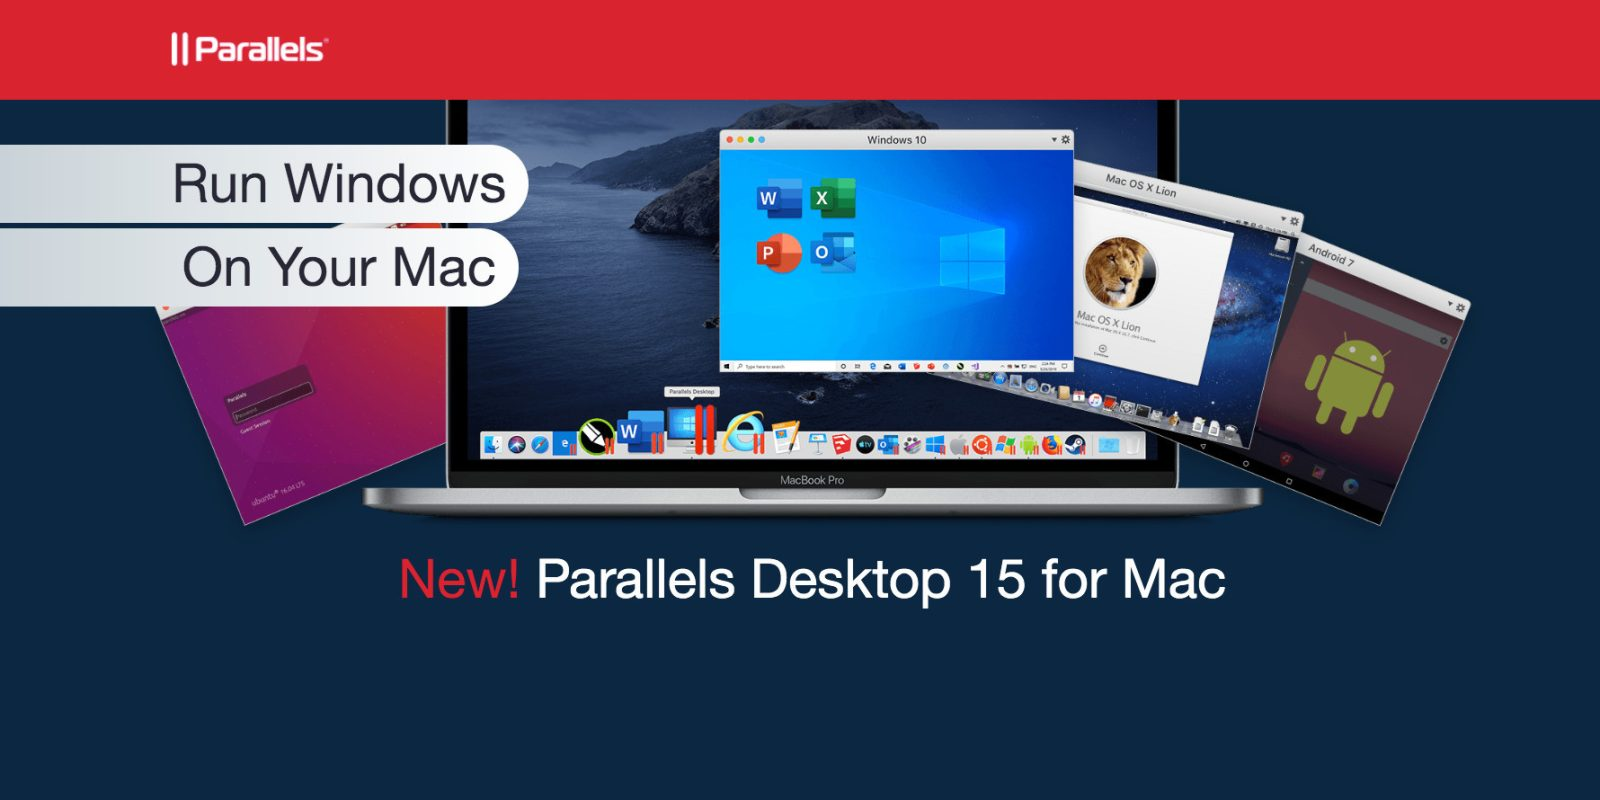 Parallels remote desktop holiday sale now live with deals starting from $72